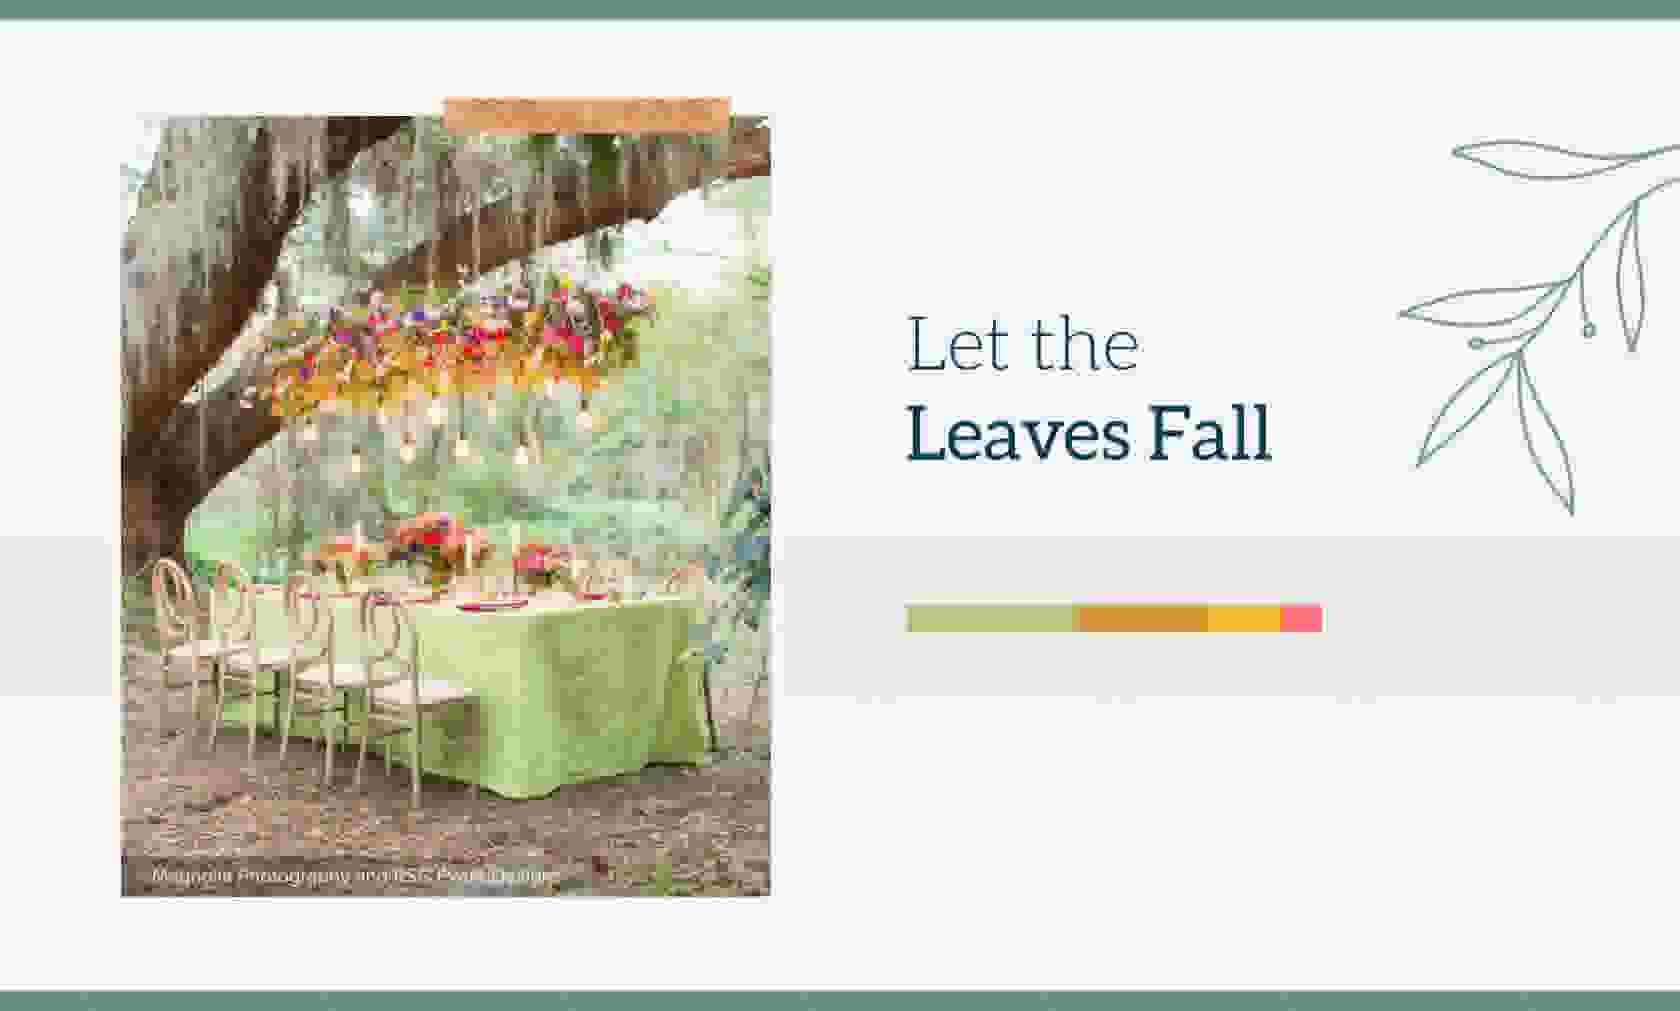 Let the Leaves Fall